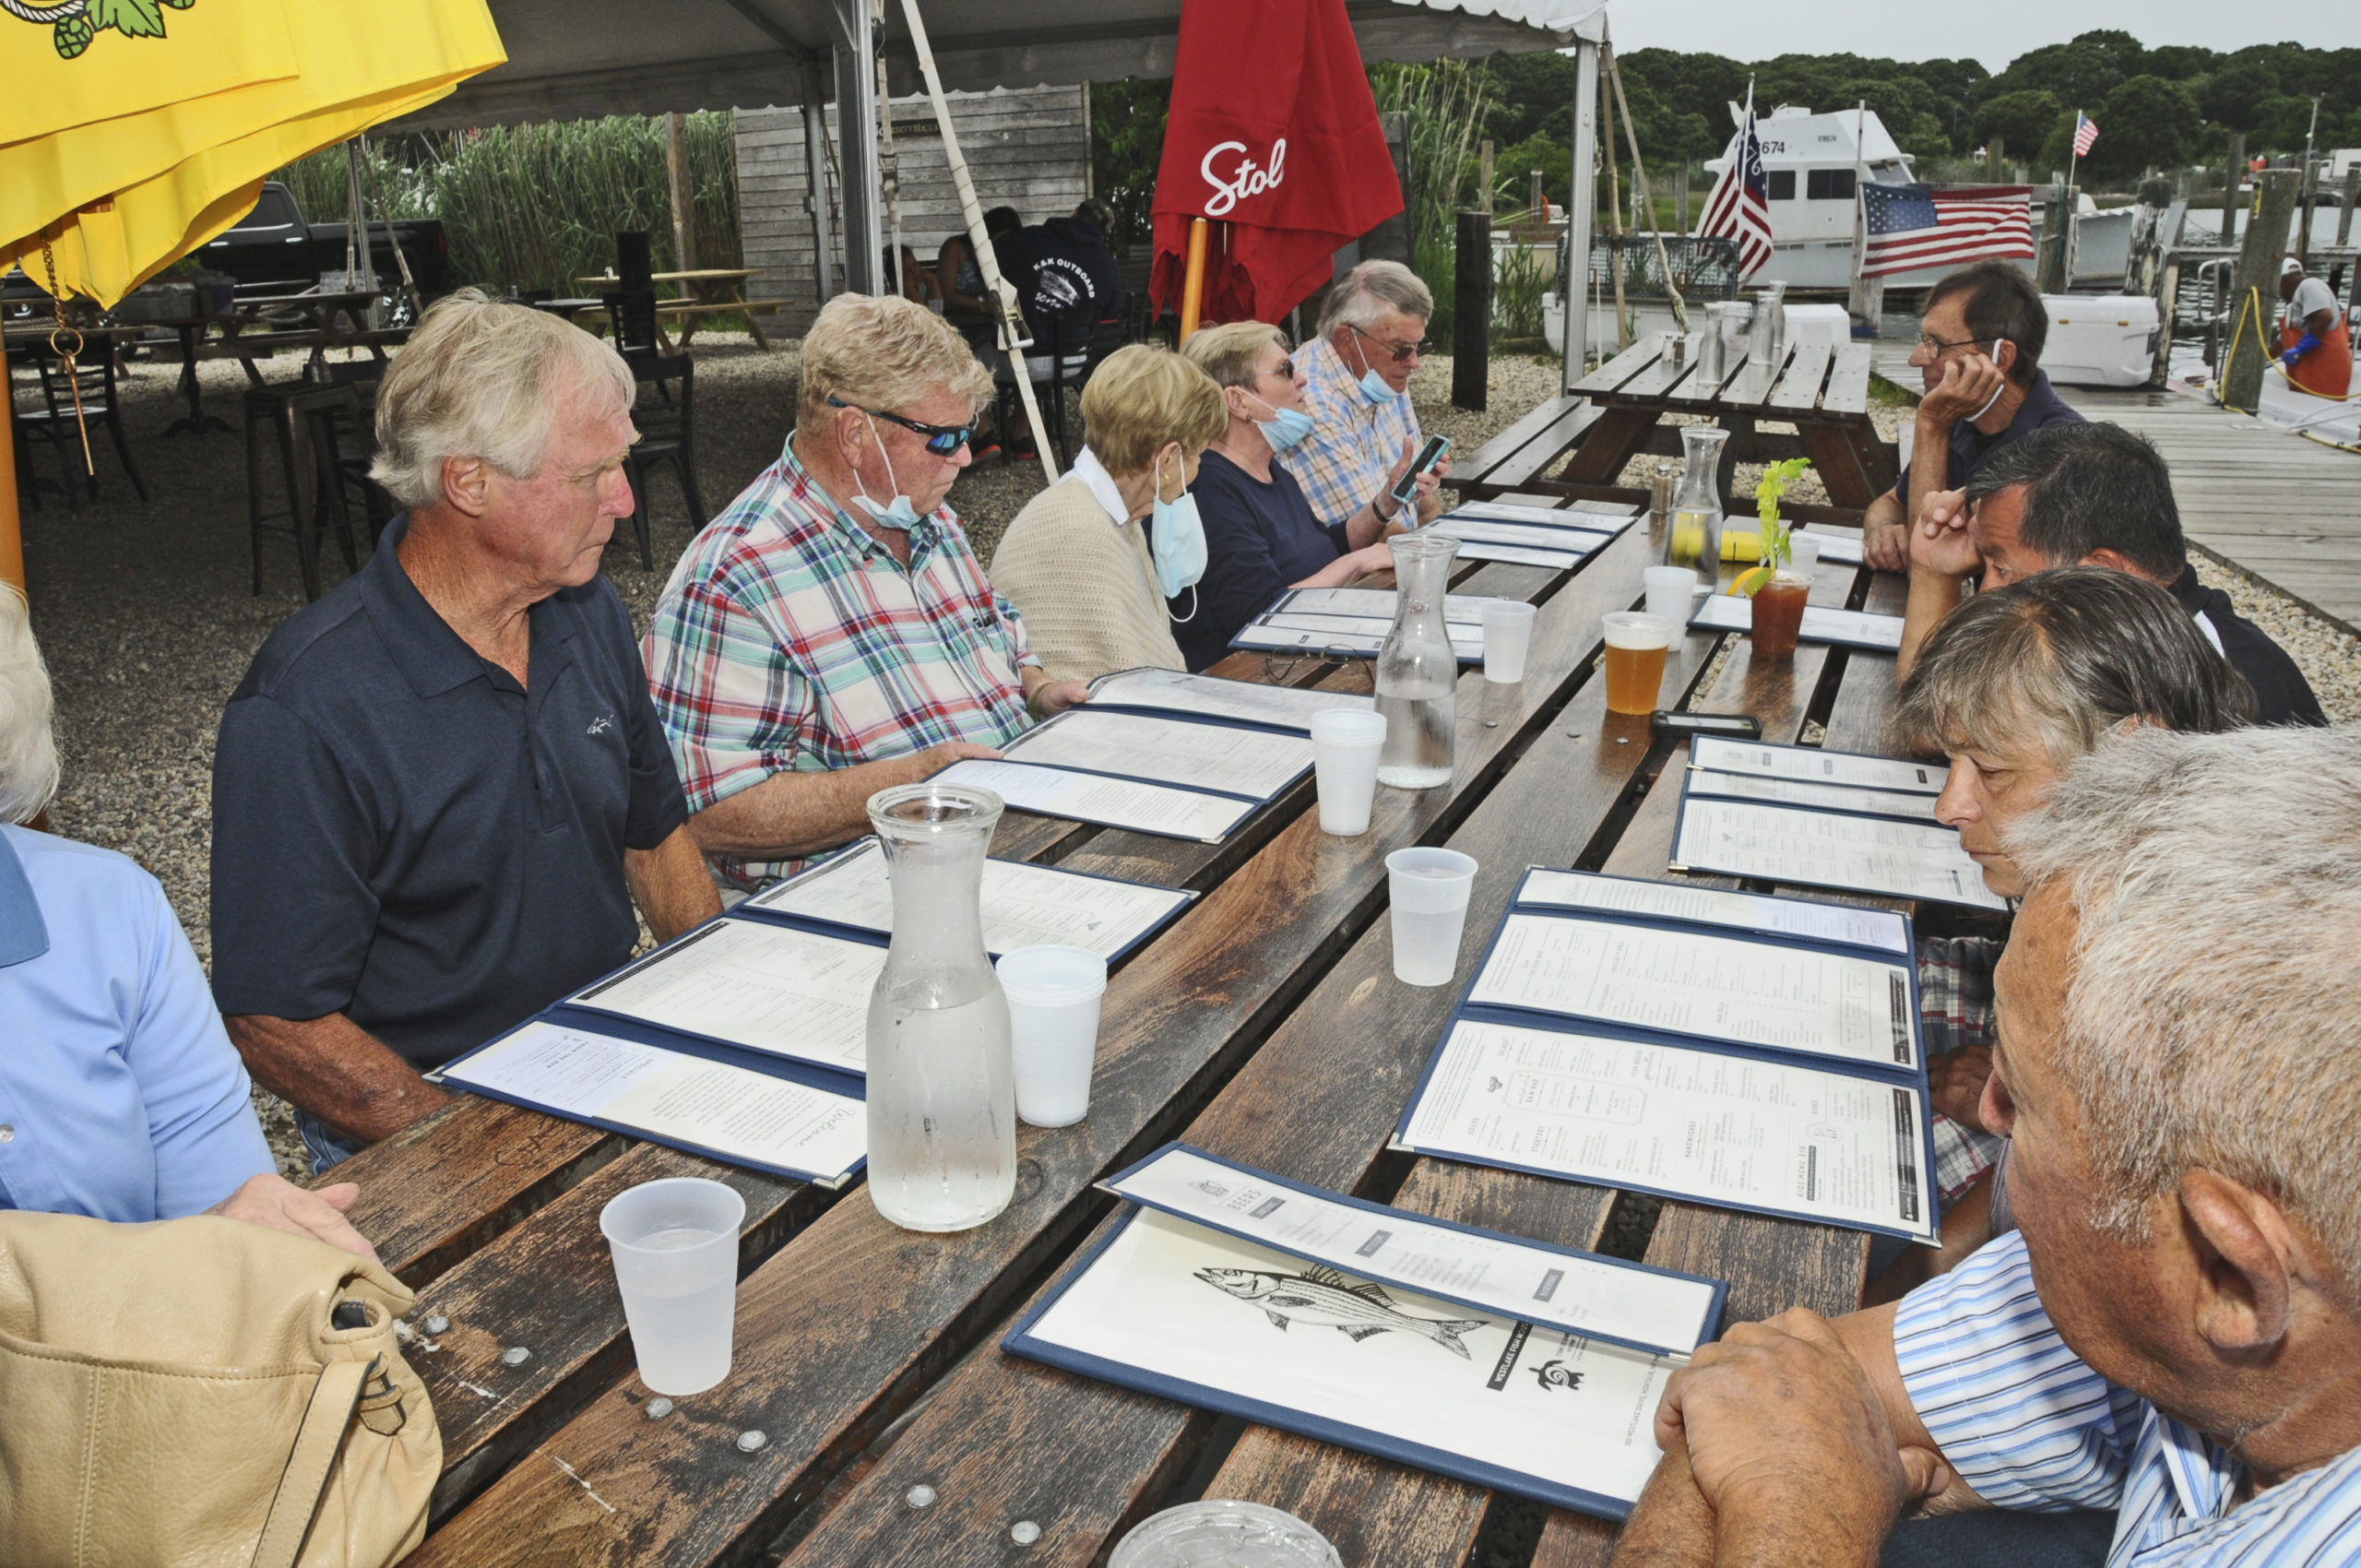 On Tuesday, July 7th, Montauk Fire Department's Fire Police Company No. 6 took a break from their duties for a Family Gathering at Westlake Fish House at the docks in Montauk.     RICHARD LEWIN